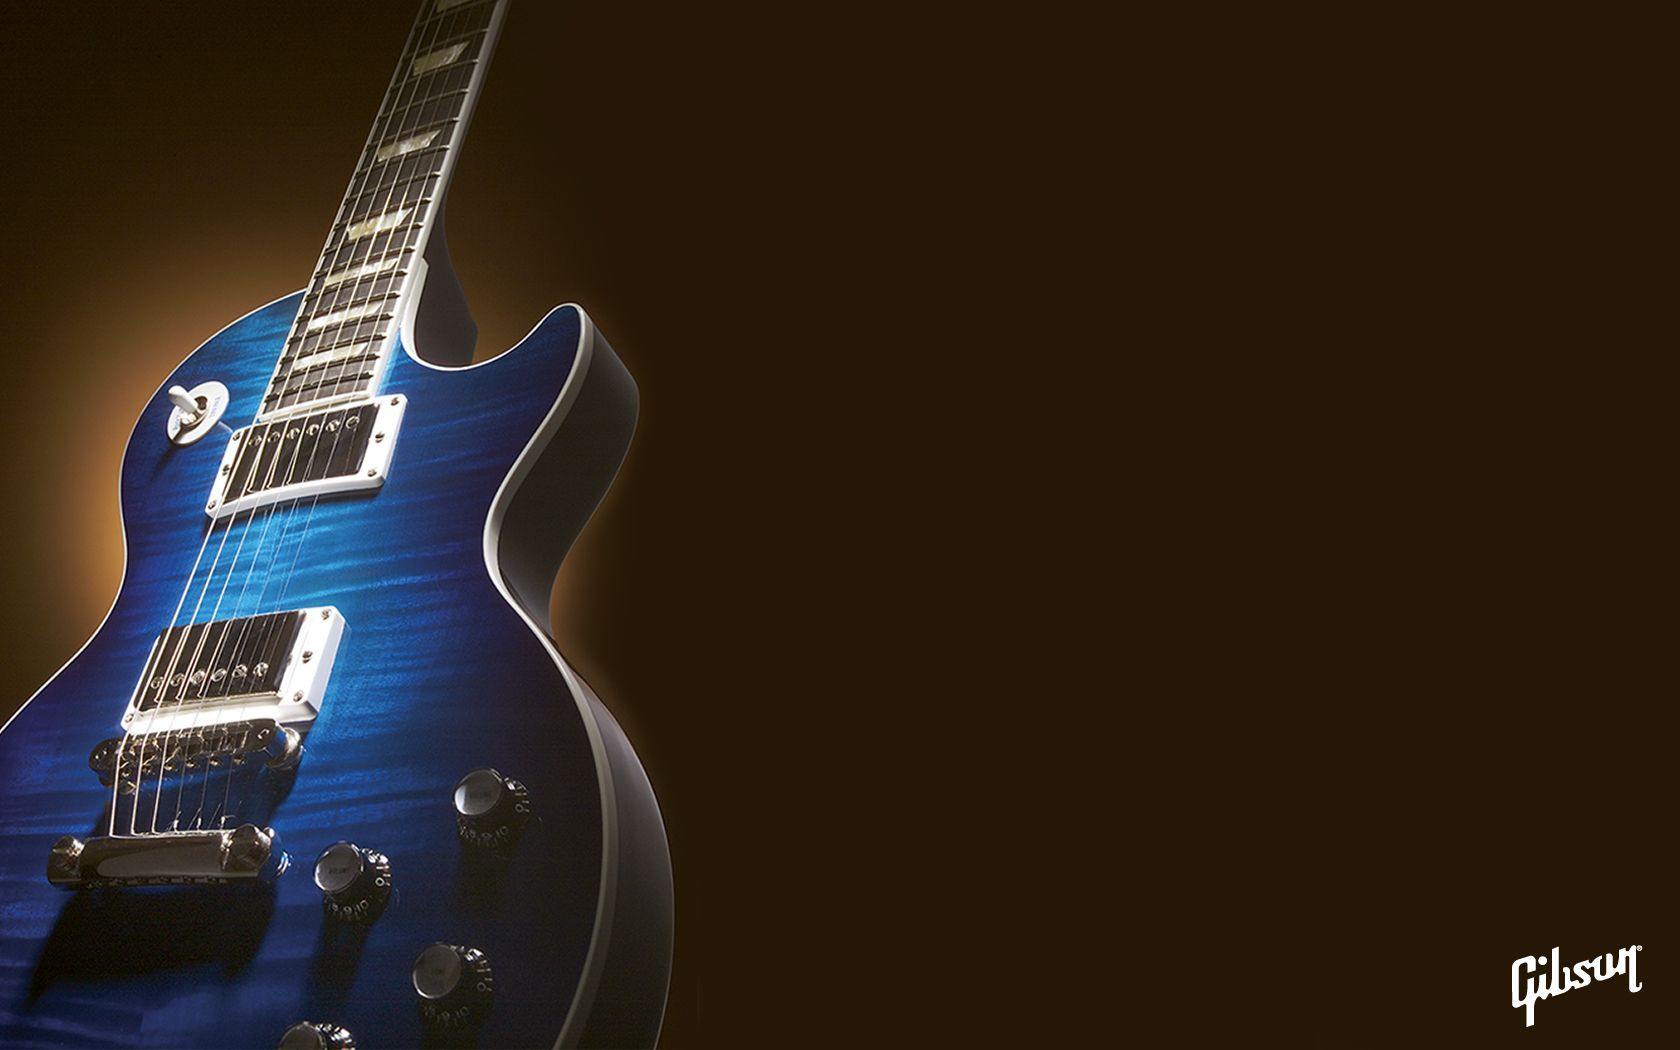 Gibson Wallpapers - Wallpaper Cave